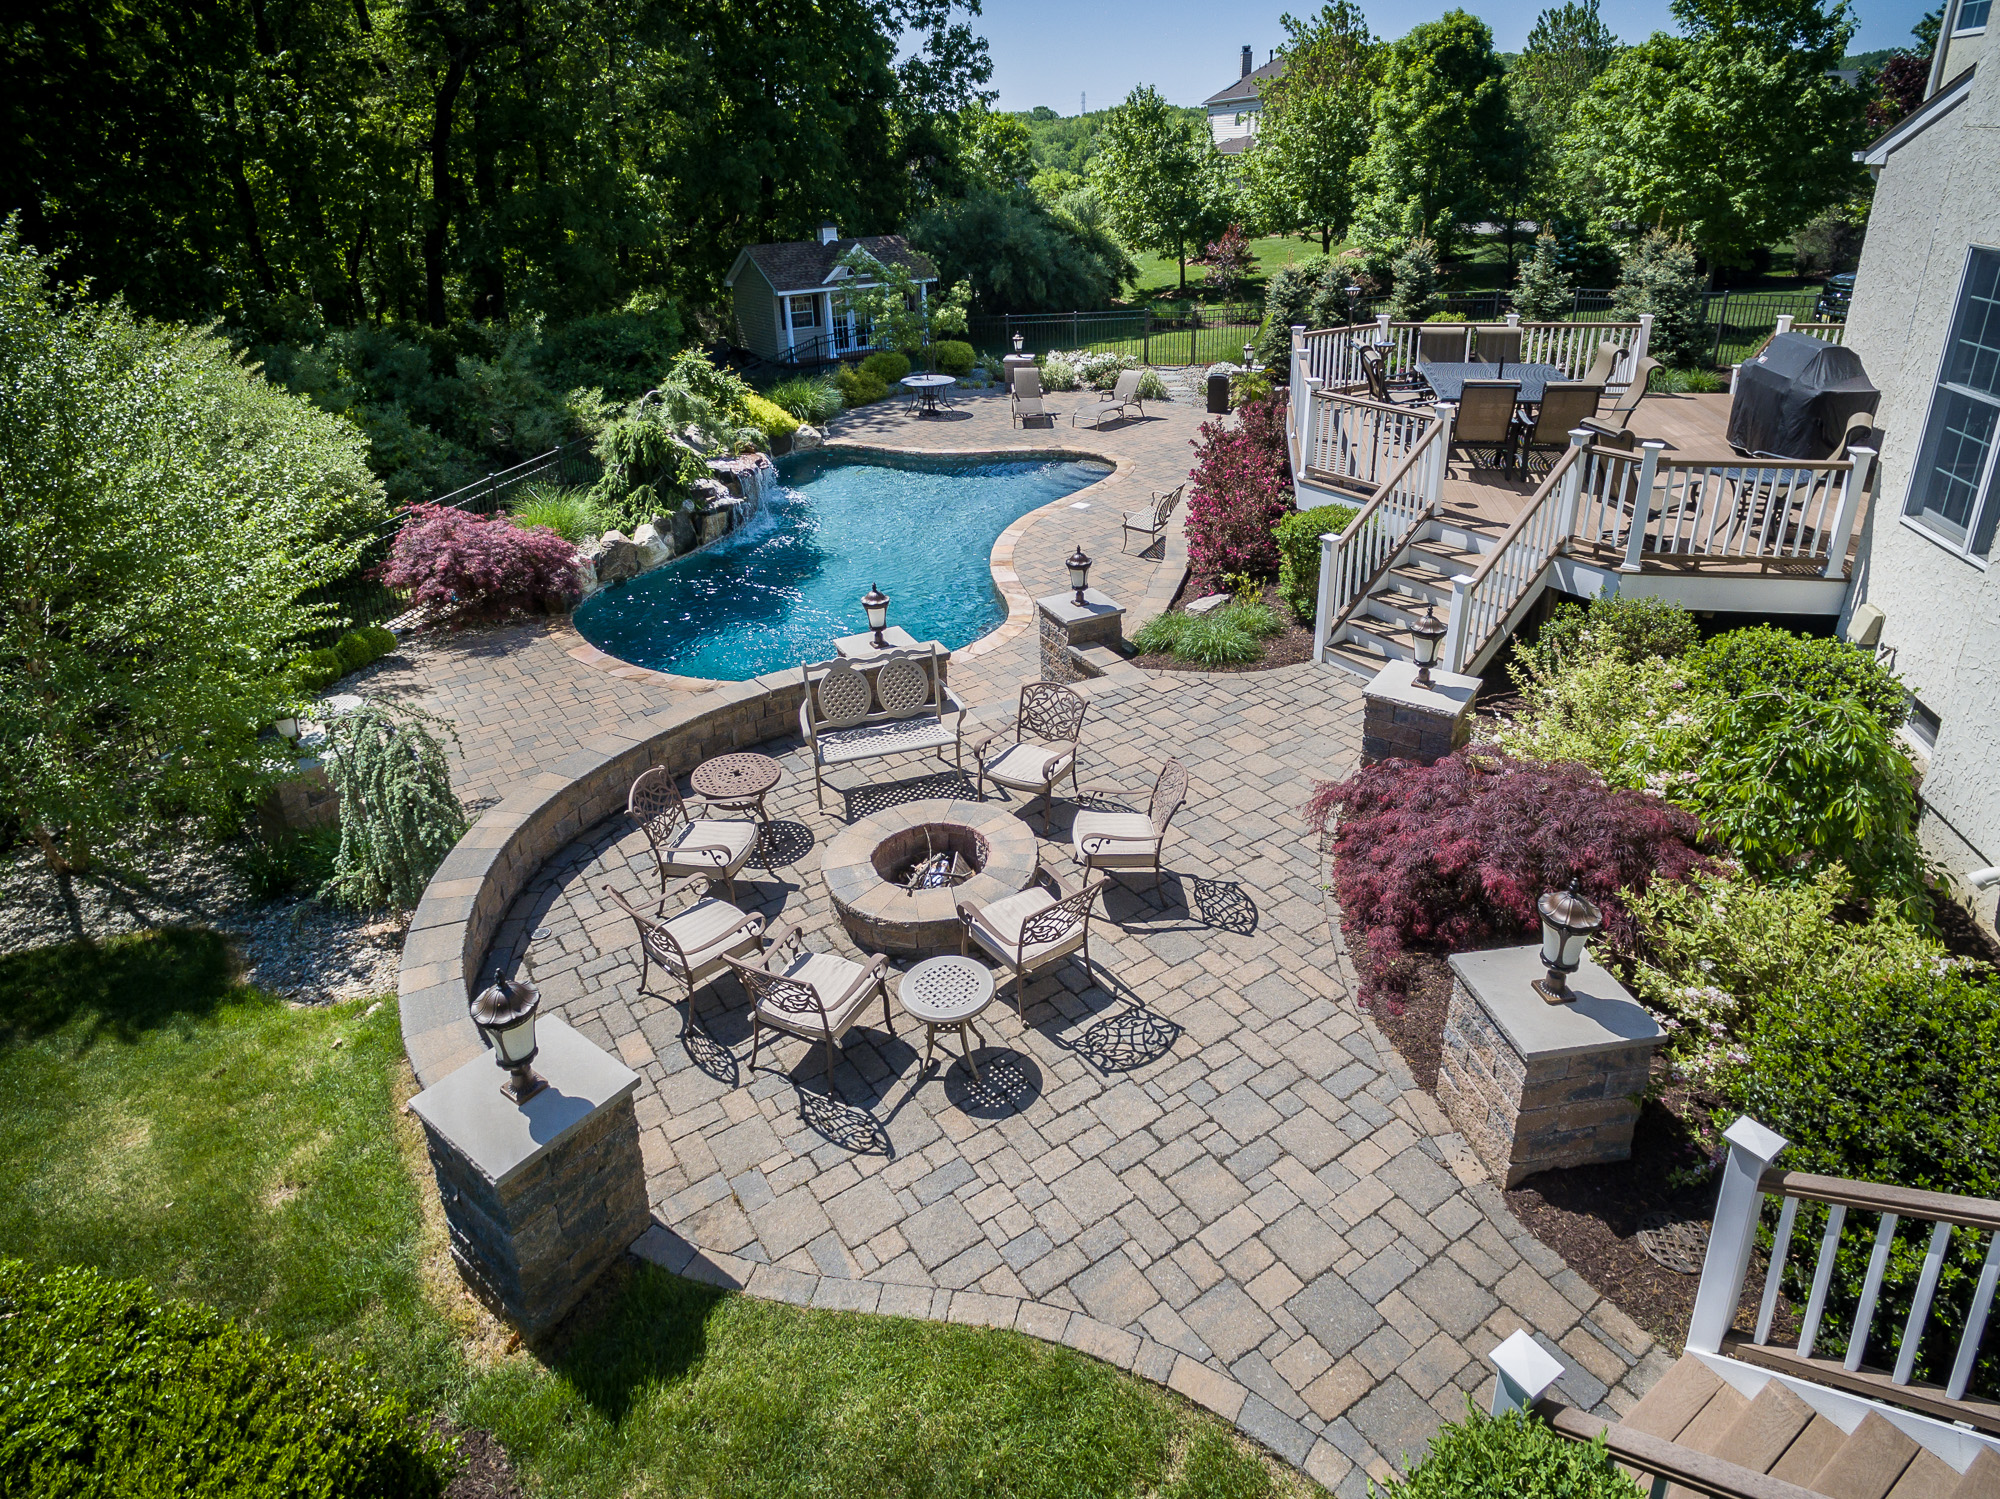 Chester Nj Custom Inground Swimming Pool Design Construction